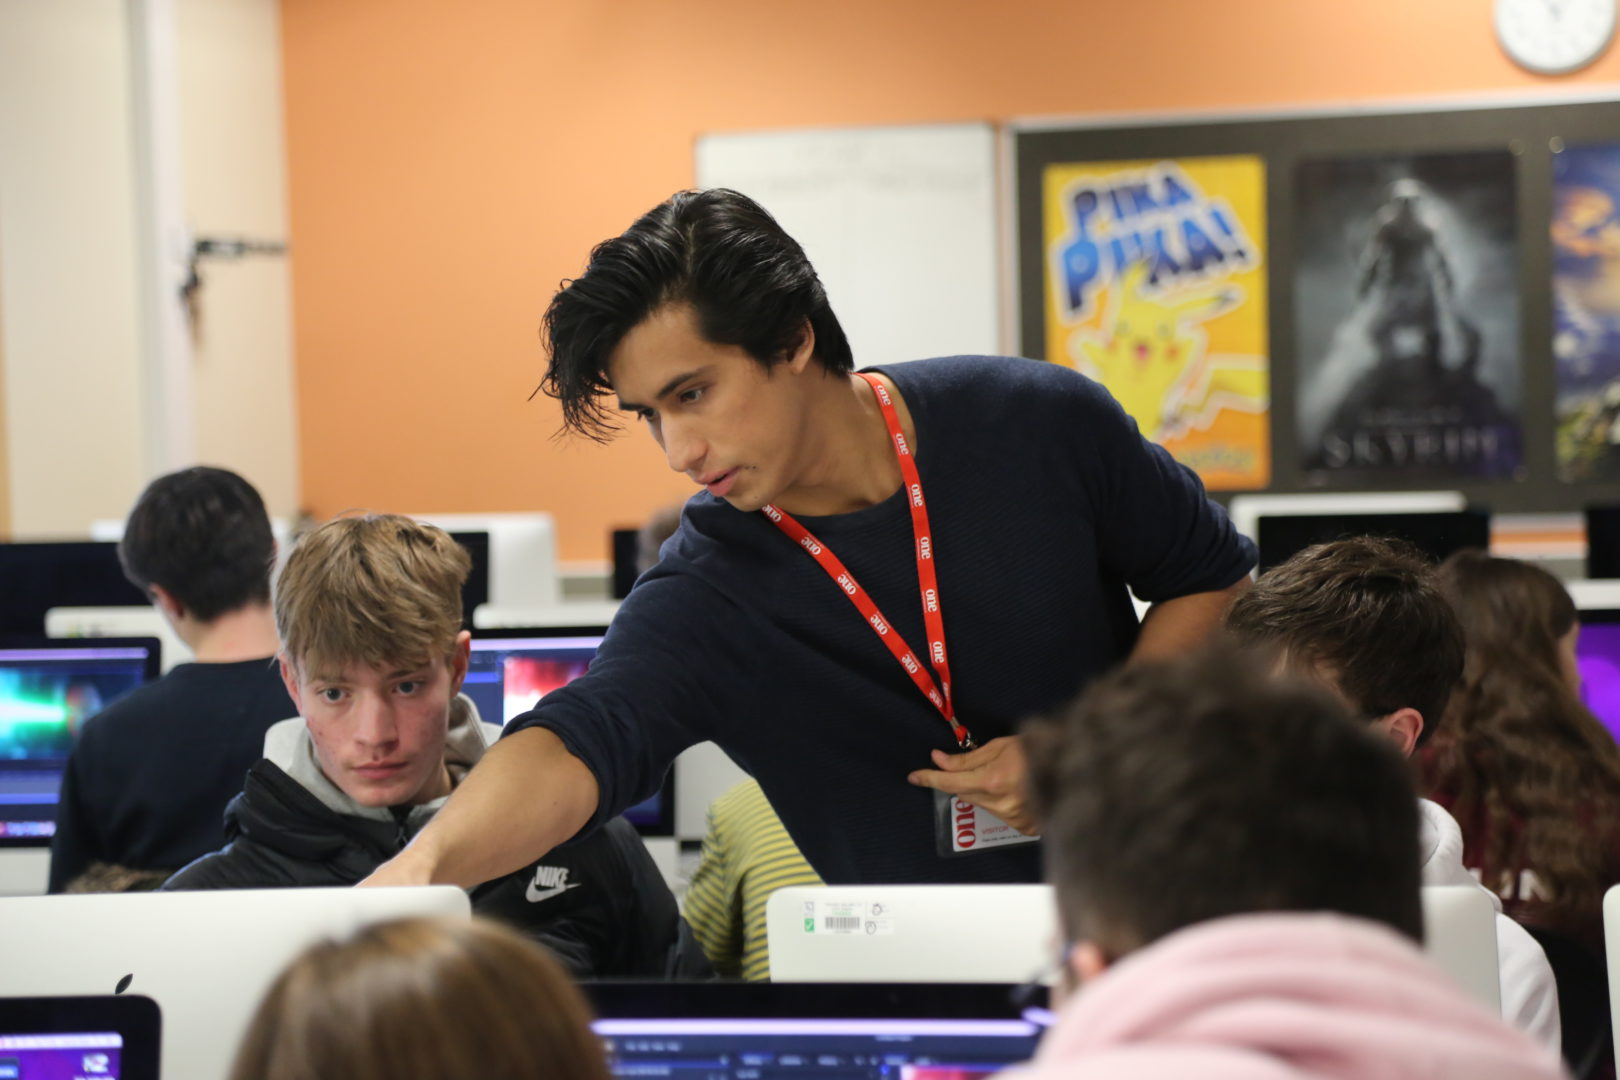 Javert Valbarr - FXhome's VFX artist and product expert teaching students with AccessVFX